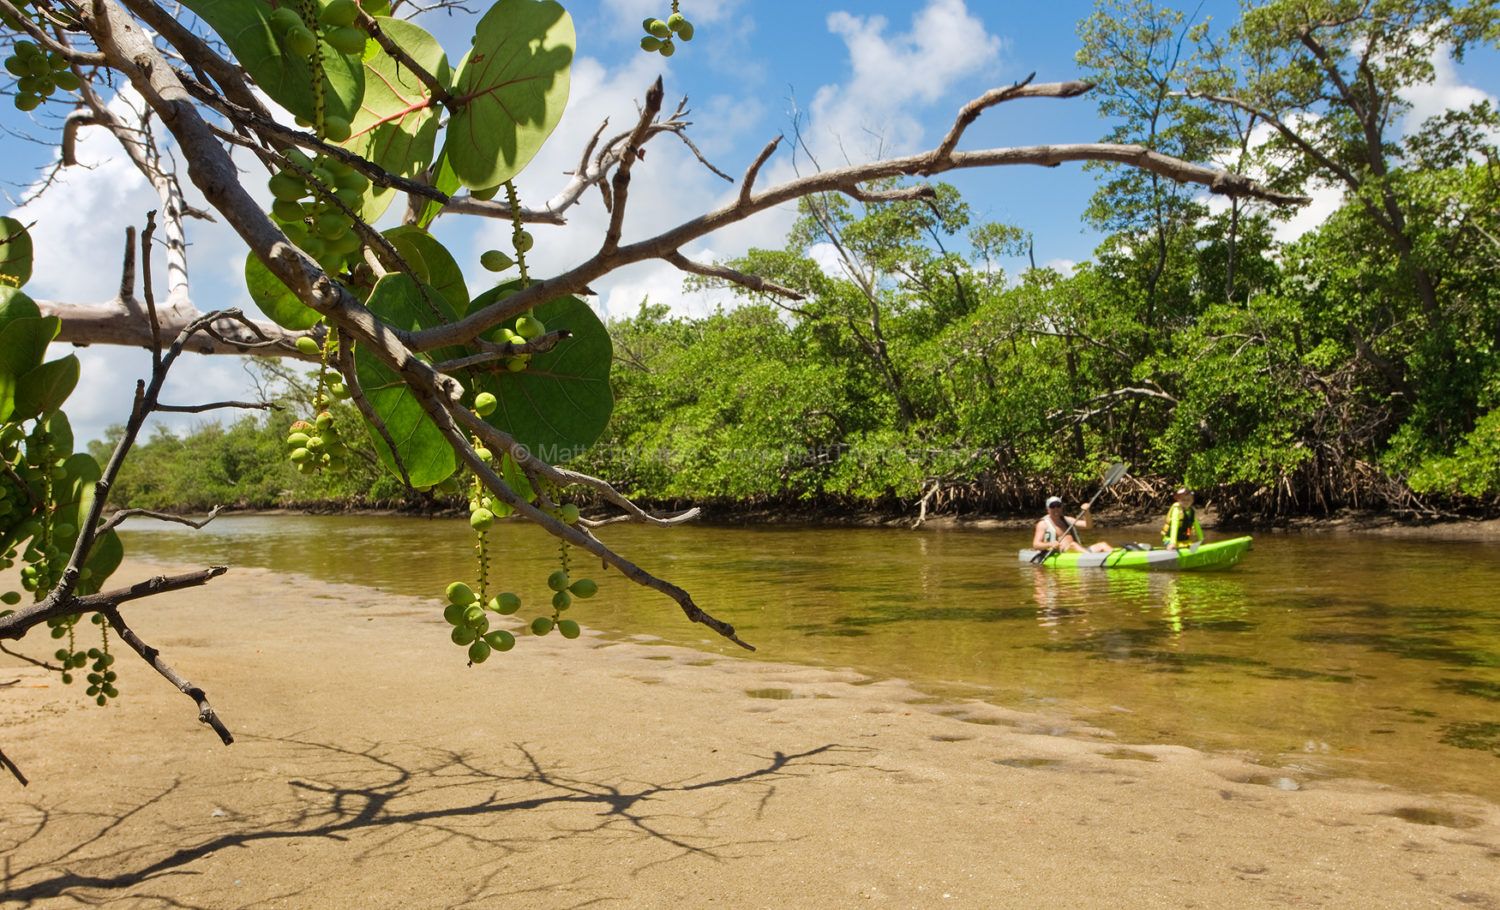 Fine art stock photograph of father and son kayaking through South Florida's wild mangrove coastal landscape, in Von D. Mizell-Eula Johnson State Park.